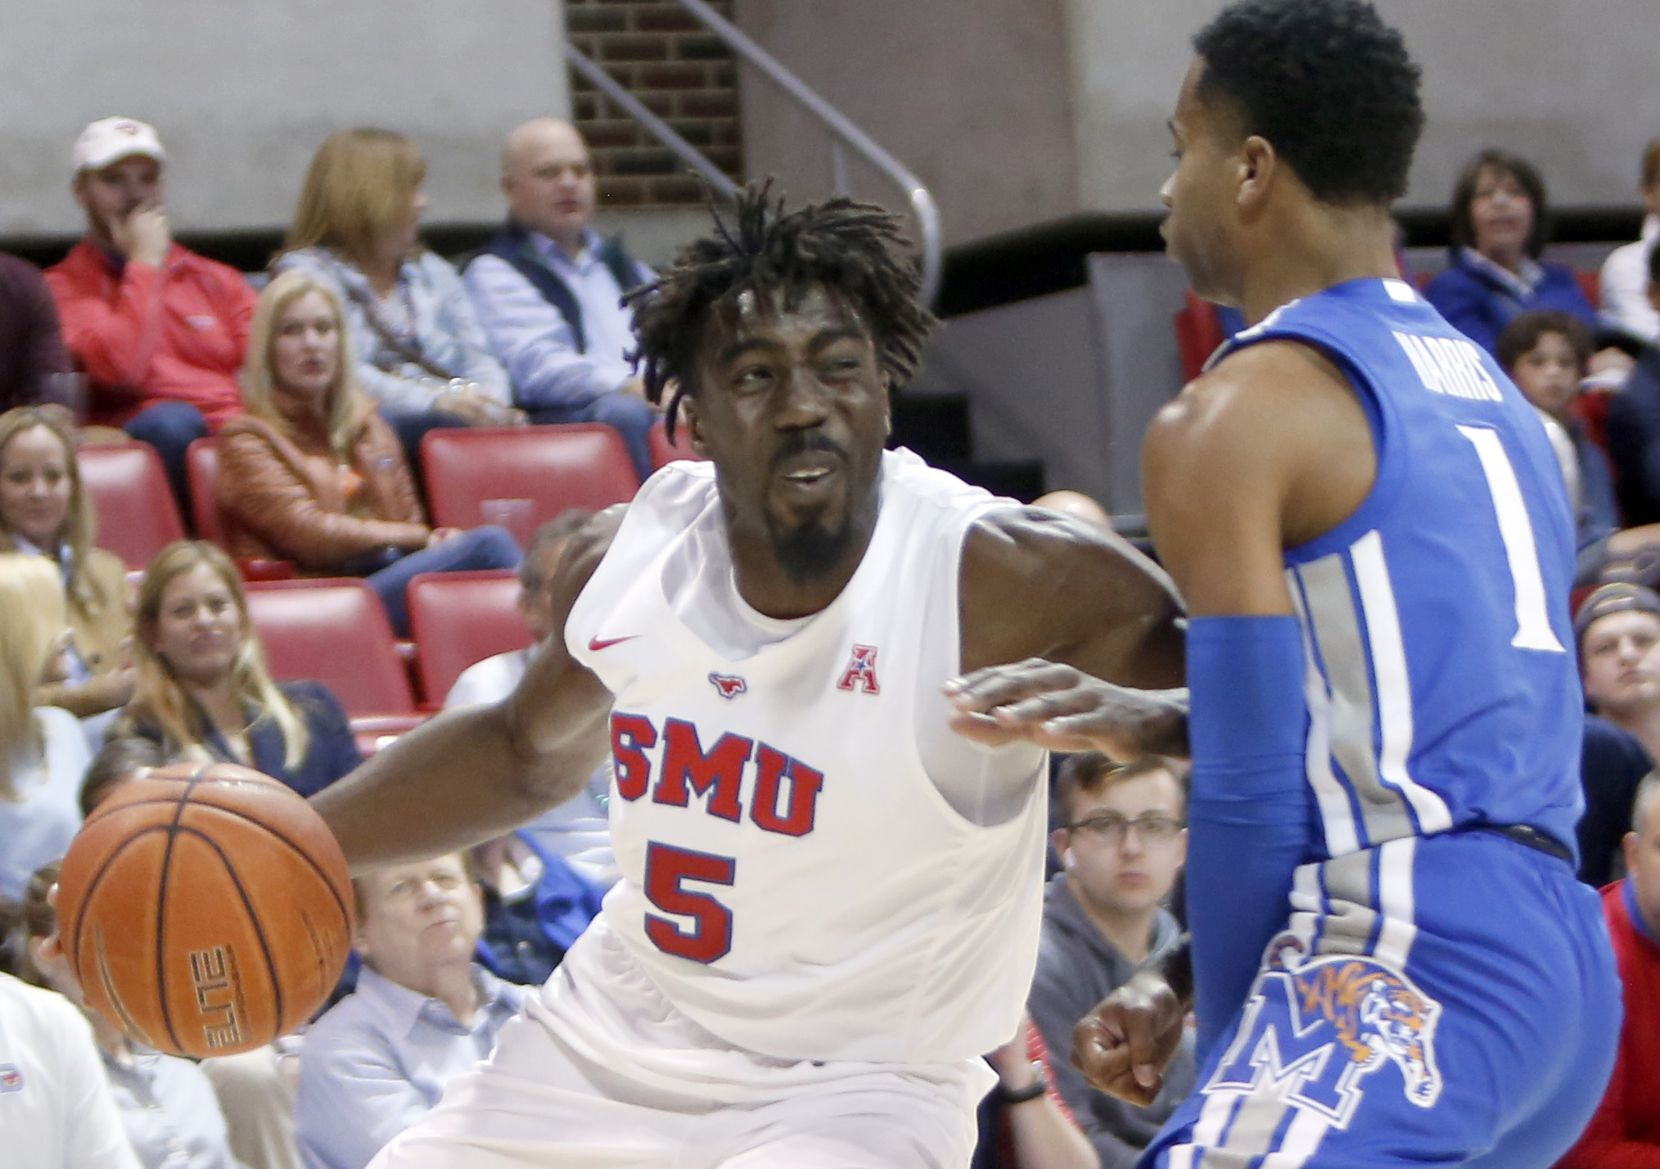 SMU guard Emmanuel Bandoumel (5) drives into Memphis guard Tyler Harris (1) during first half action. SMU defeated memphis 58-53. The two teams from the NCAA's American Athletic Conference played their men's basketball game at SMU's Moody Coliseum in Dallas on February 25, 2020.